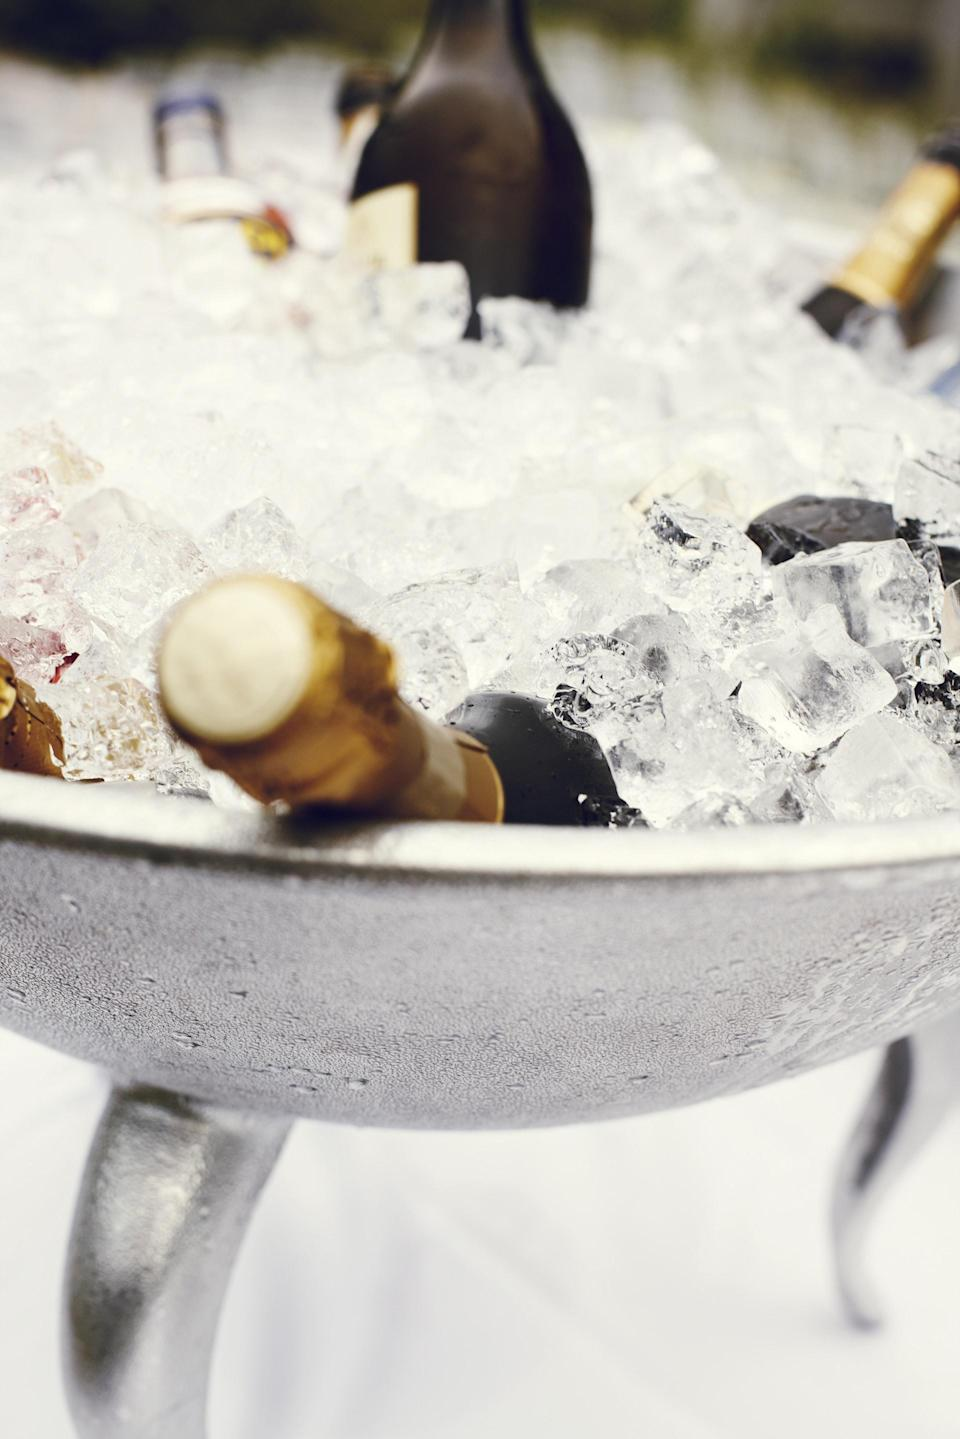 Watch out for ice buckets too [Photo: Pexels]